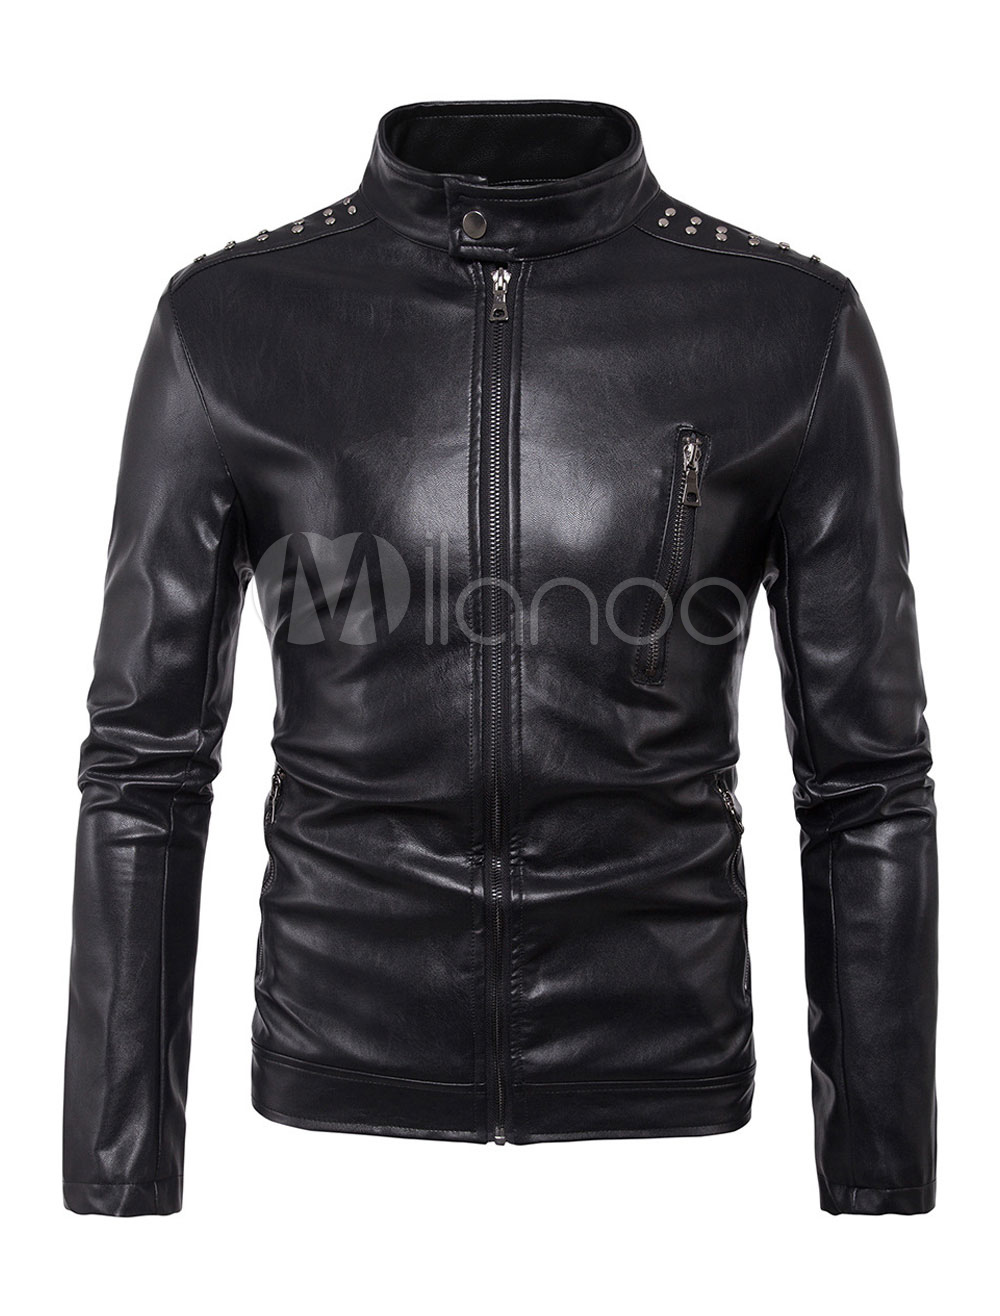 Buy Black Motorcycle Jacket Men Leather Jacket Stand Collar Long Sleeve Zip Up Short Jacket for $53.89 in Milanoo store